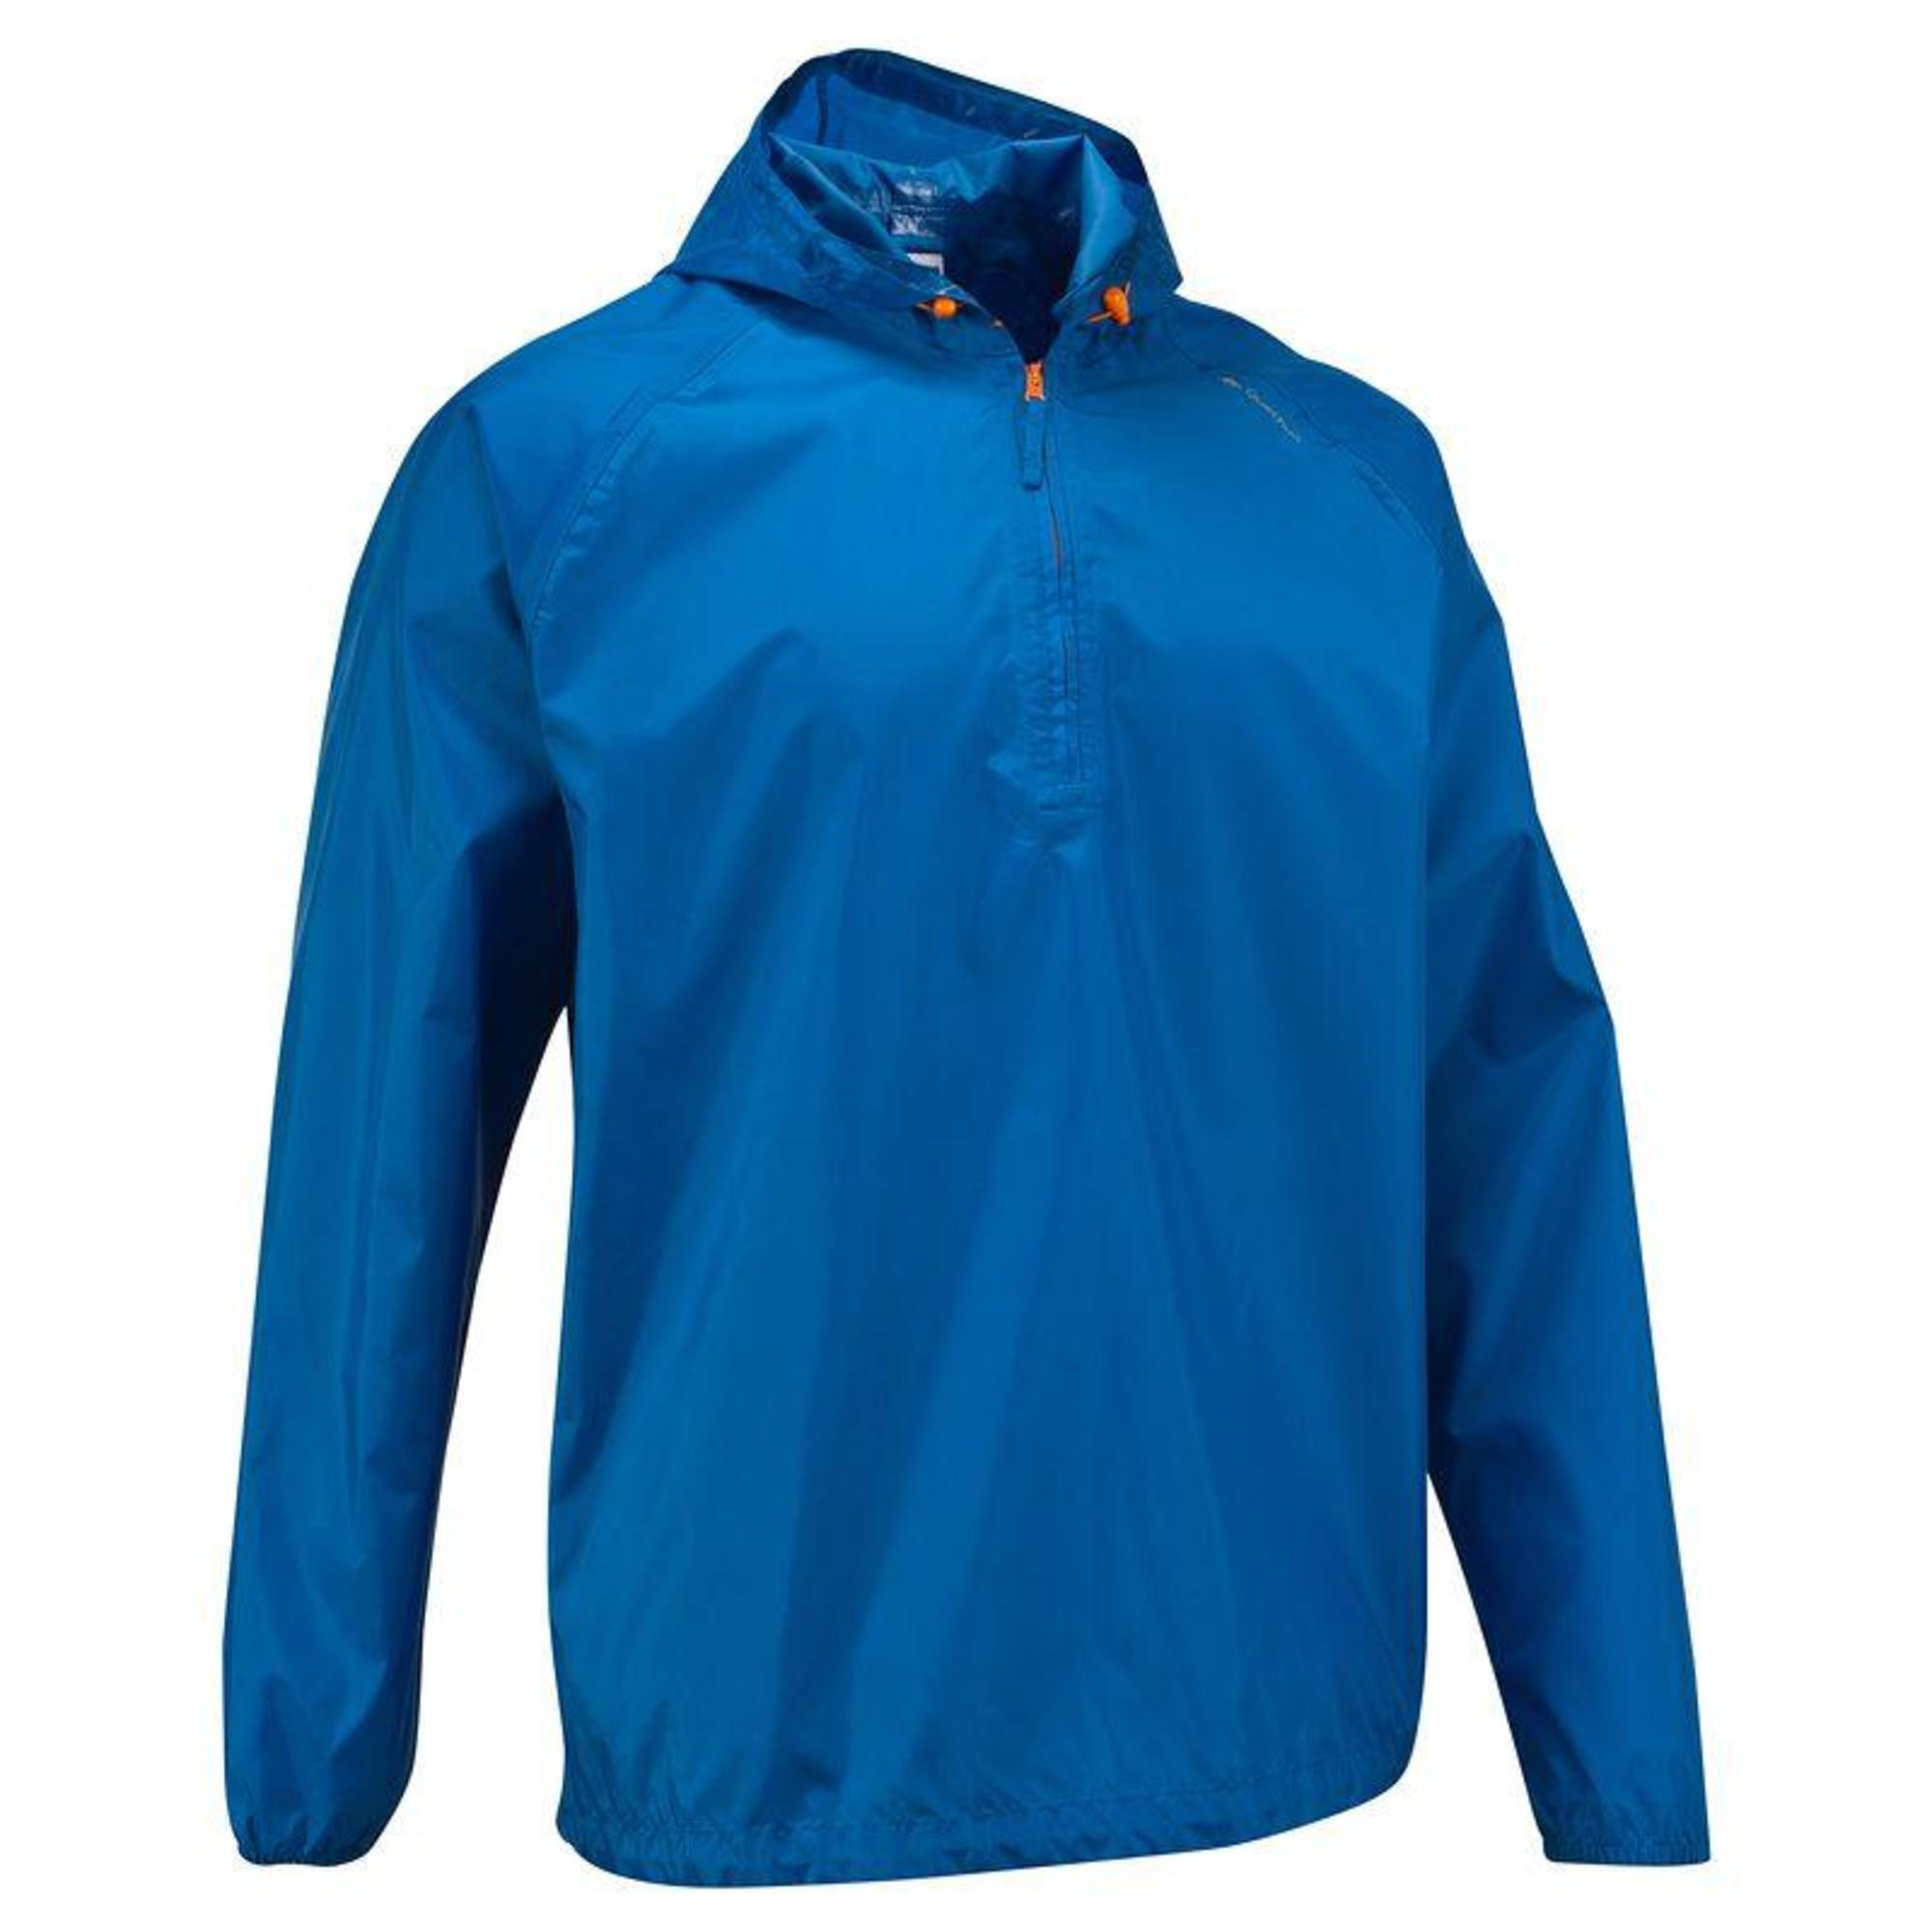 Rain-Cut Men's Hiking Waterproof Rain Jacket - Blue | Quechua